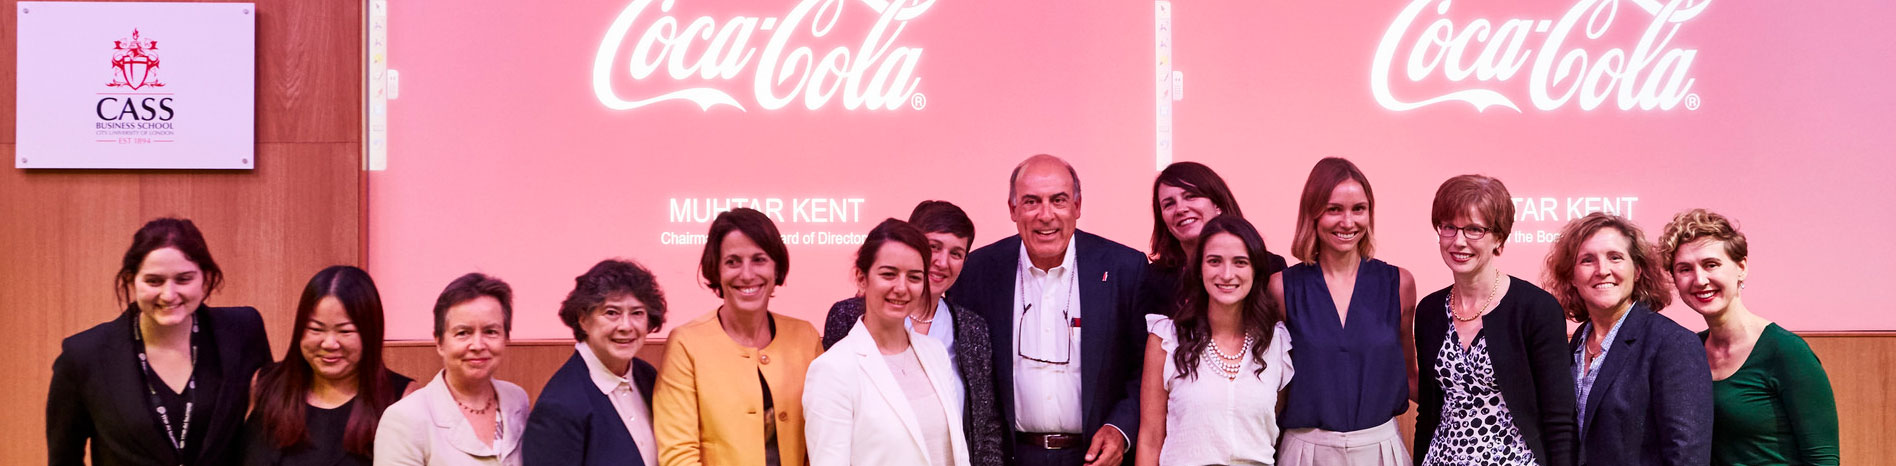 Cass Coca Cola Global Women's Leadership Scholars